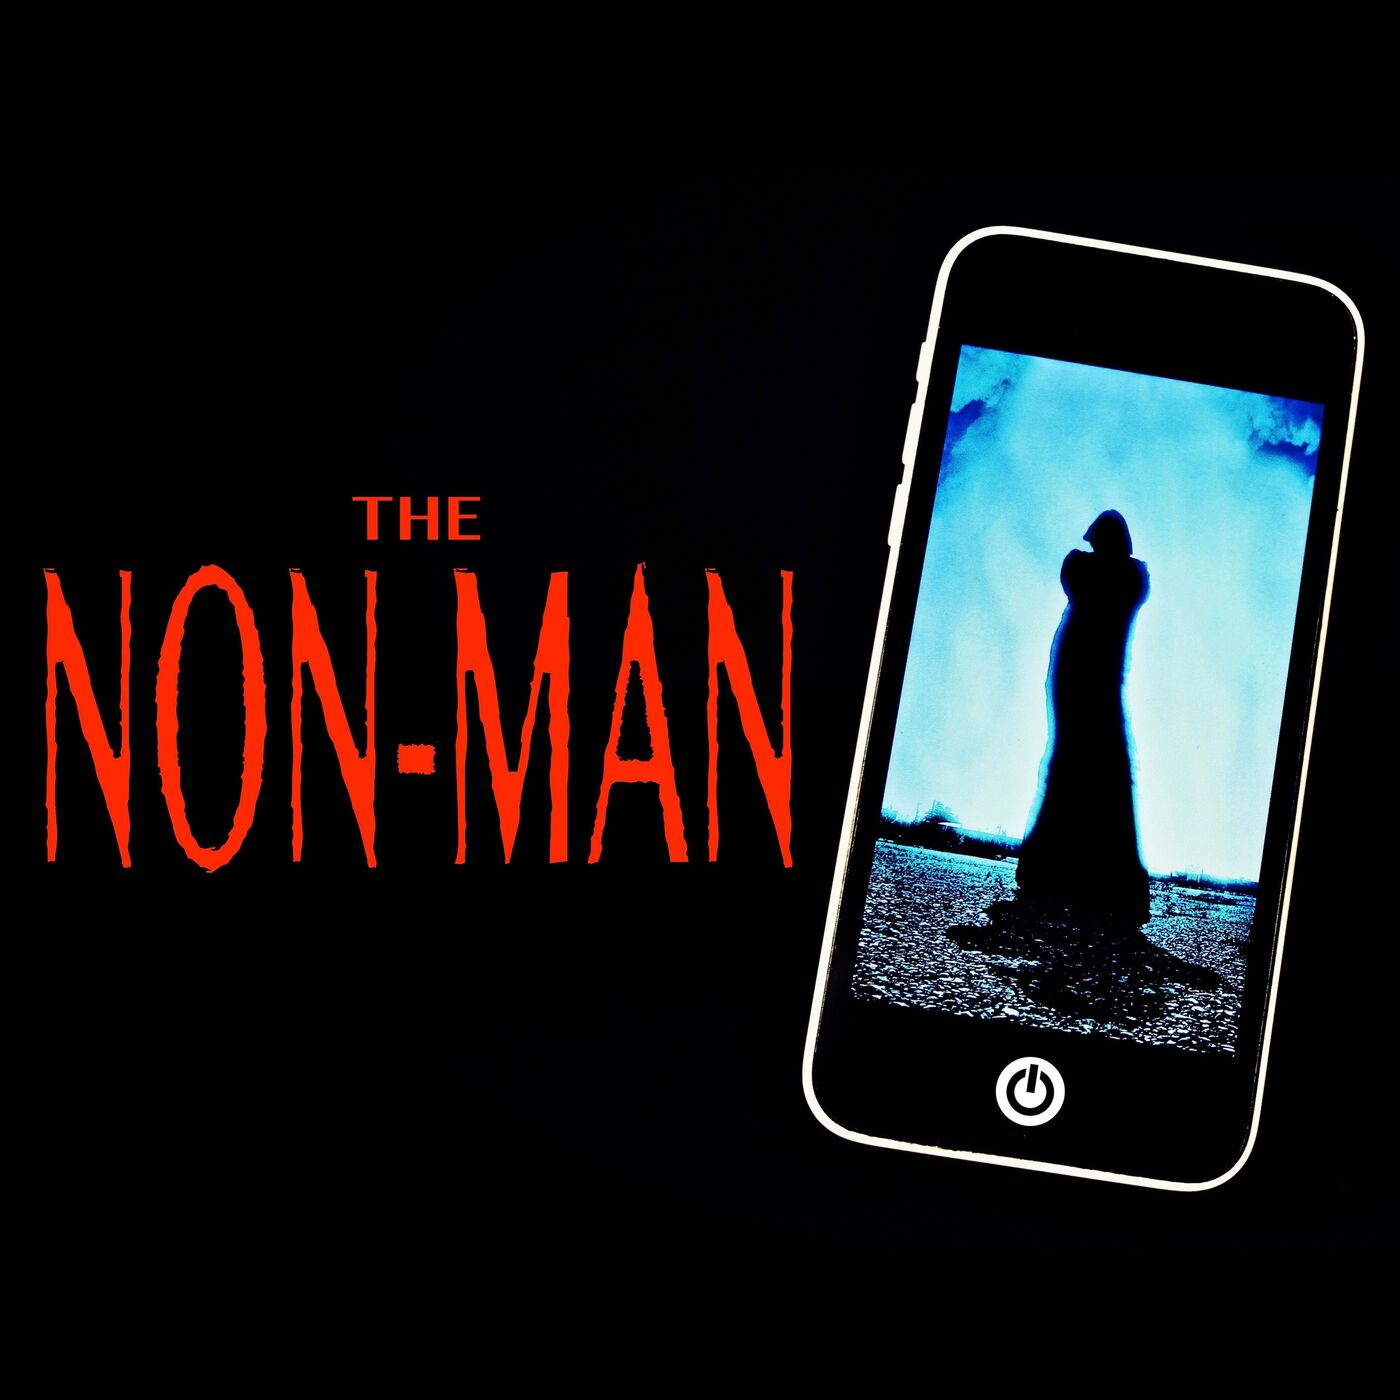 Chapter 8 The Non-Man